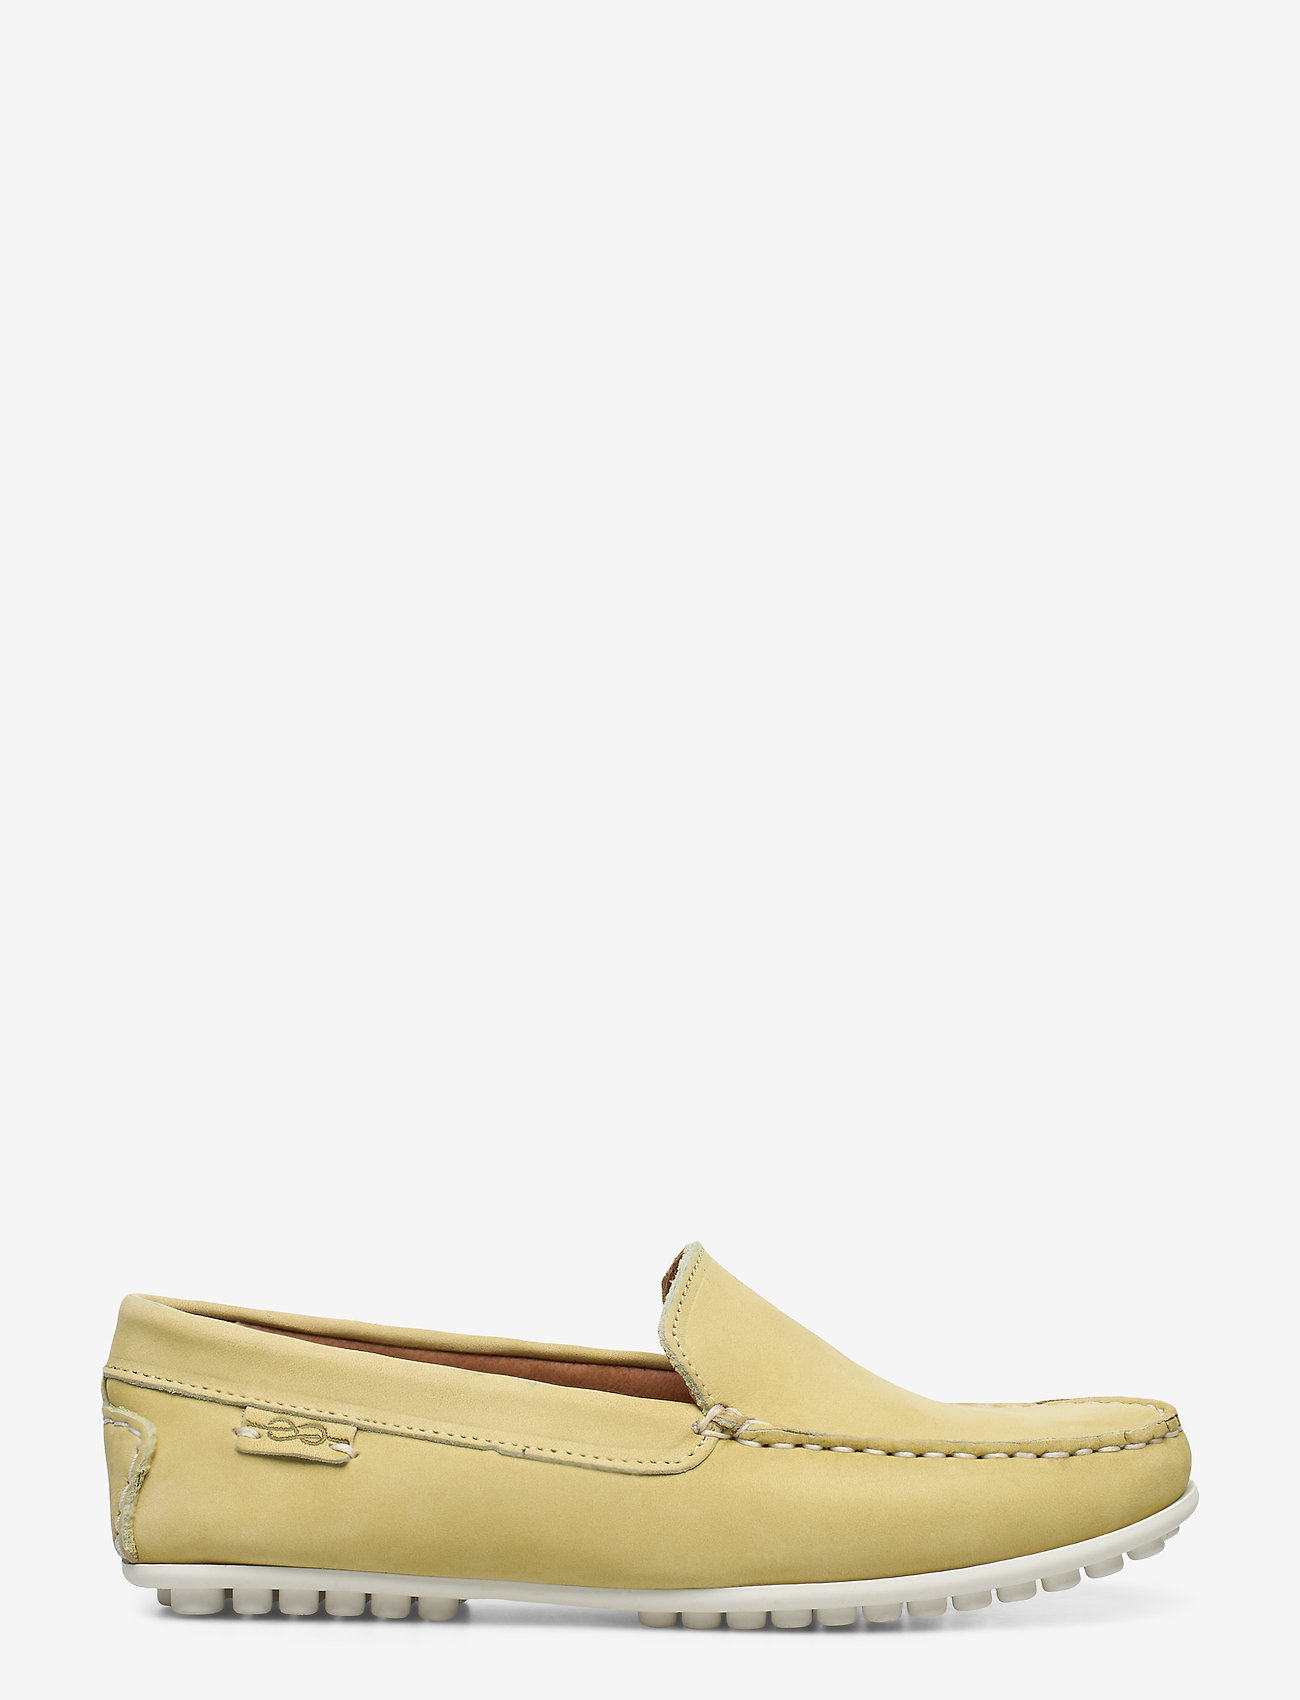 Marstrand - PLAIN DRIVING LOAFER WMN - mokasiner - yellow - 1